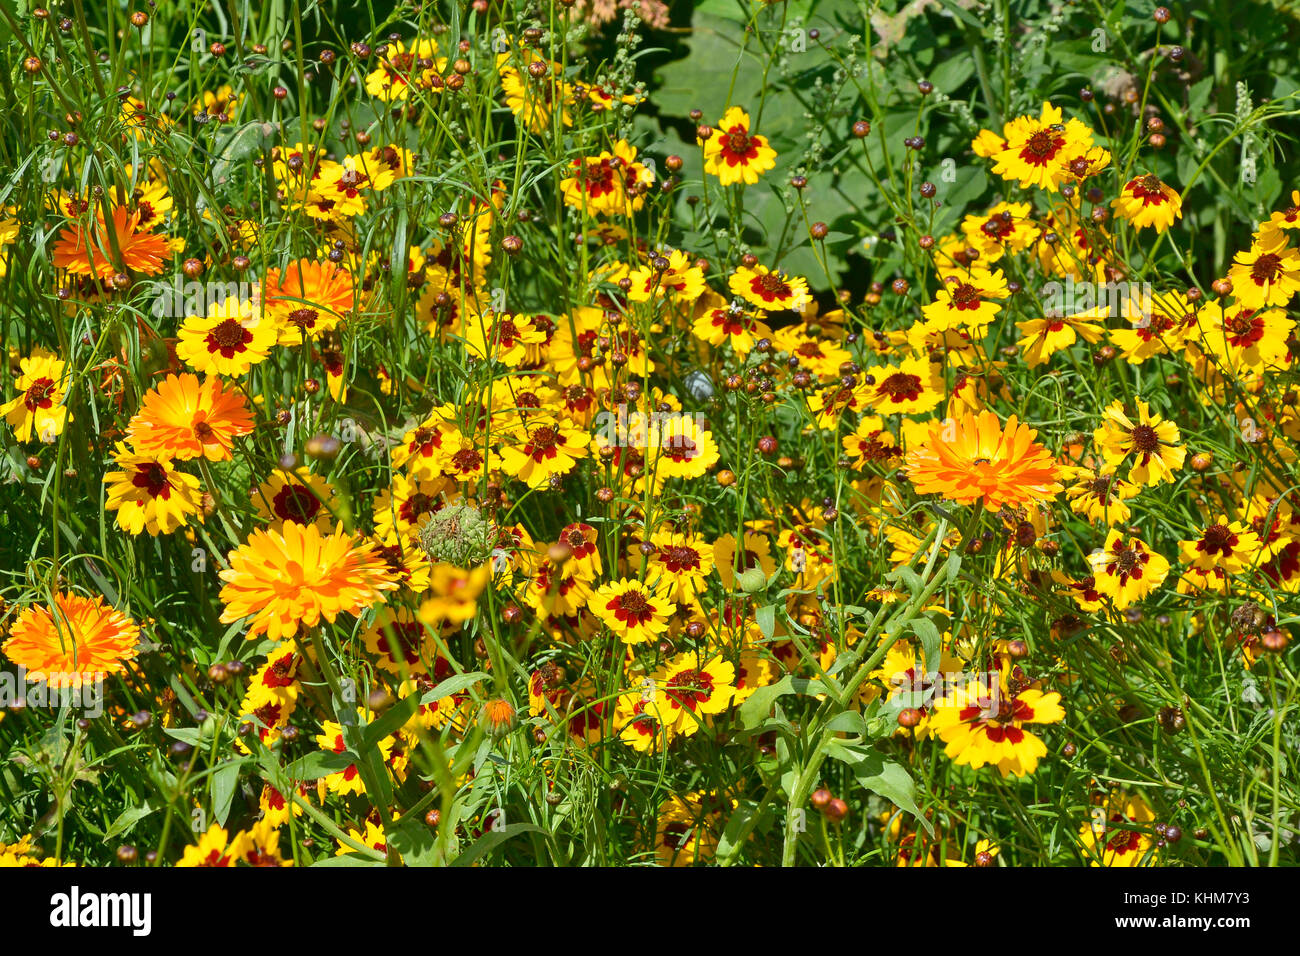 A golden naturaly planted flower meadow with Coreopsis  and marigolds Stock Photo